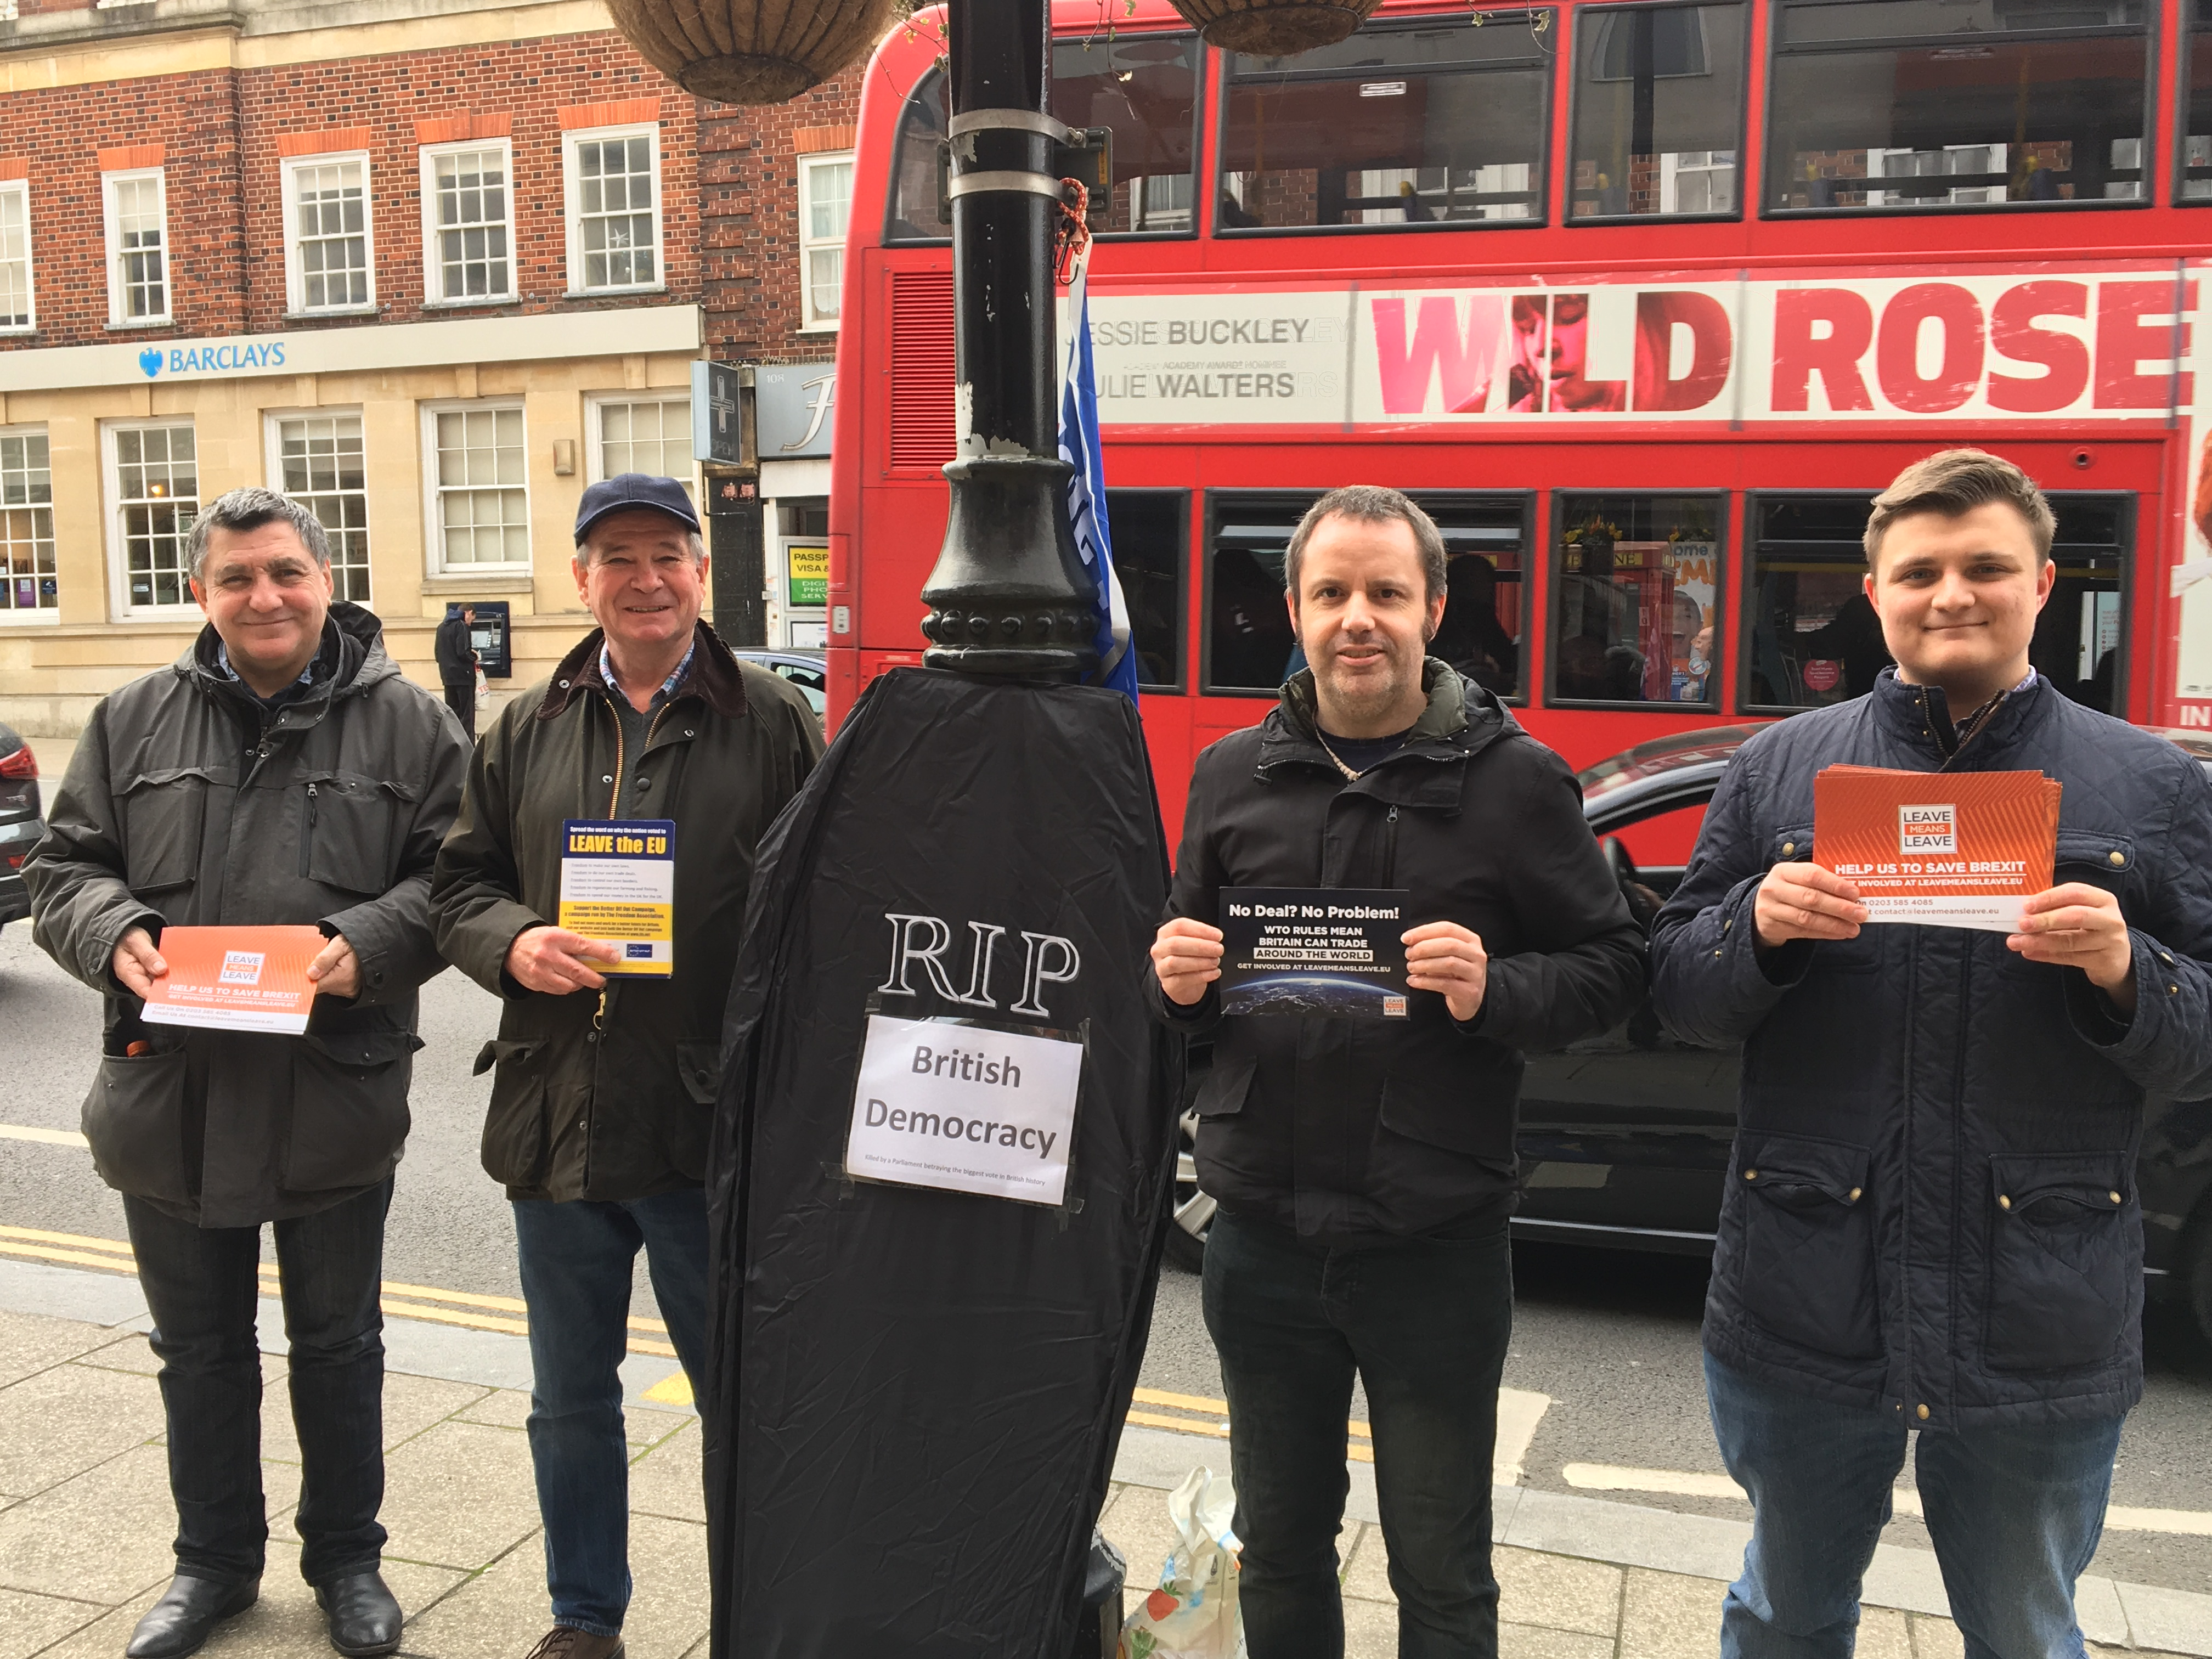 Campaigning for democracy in Wallington